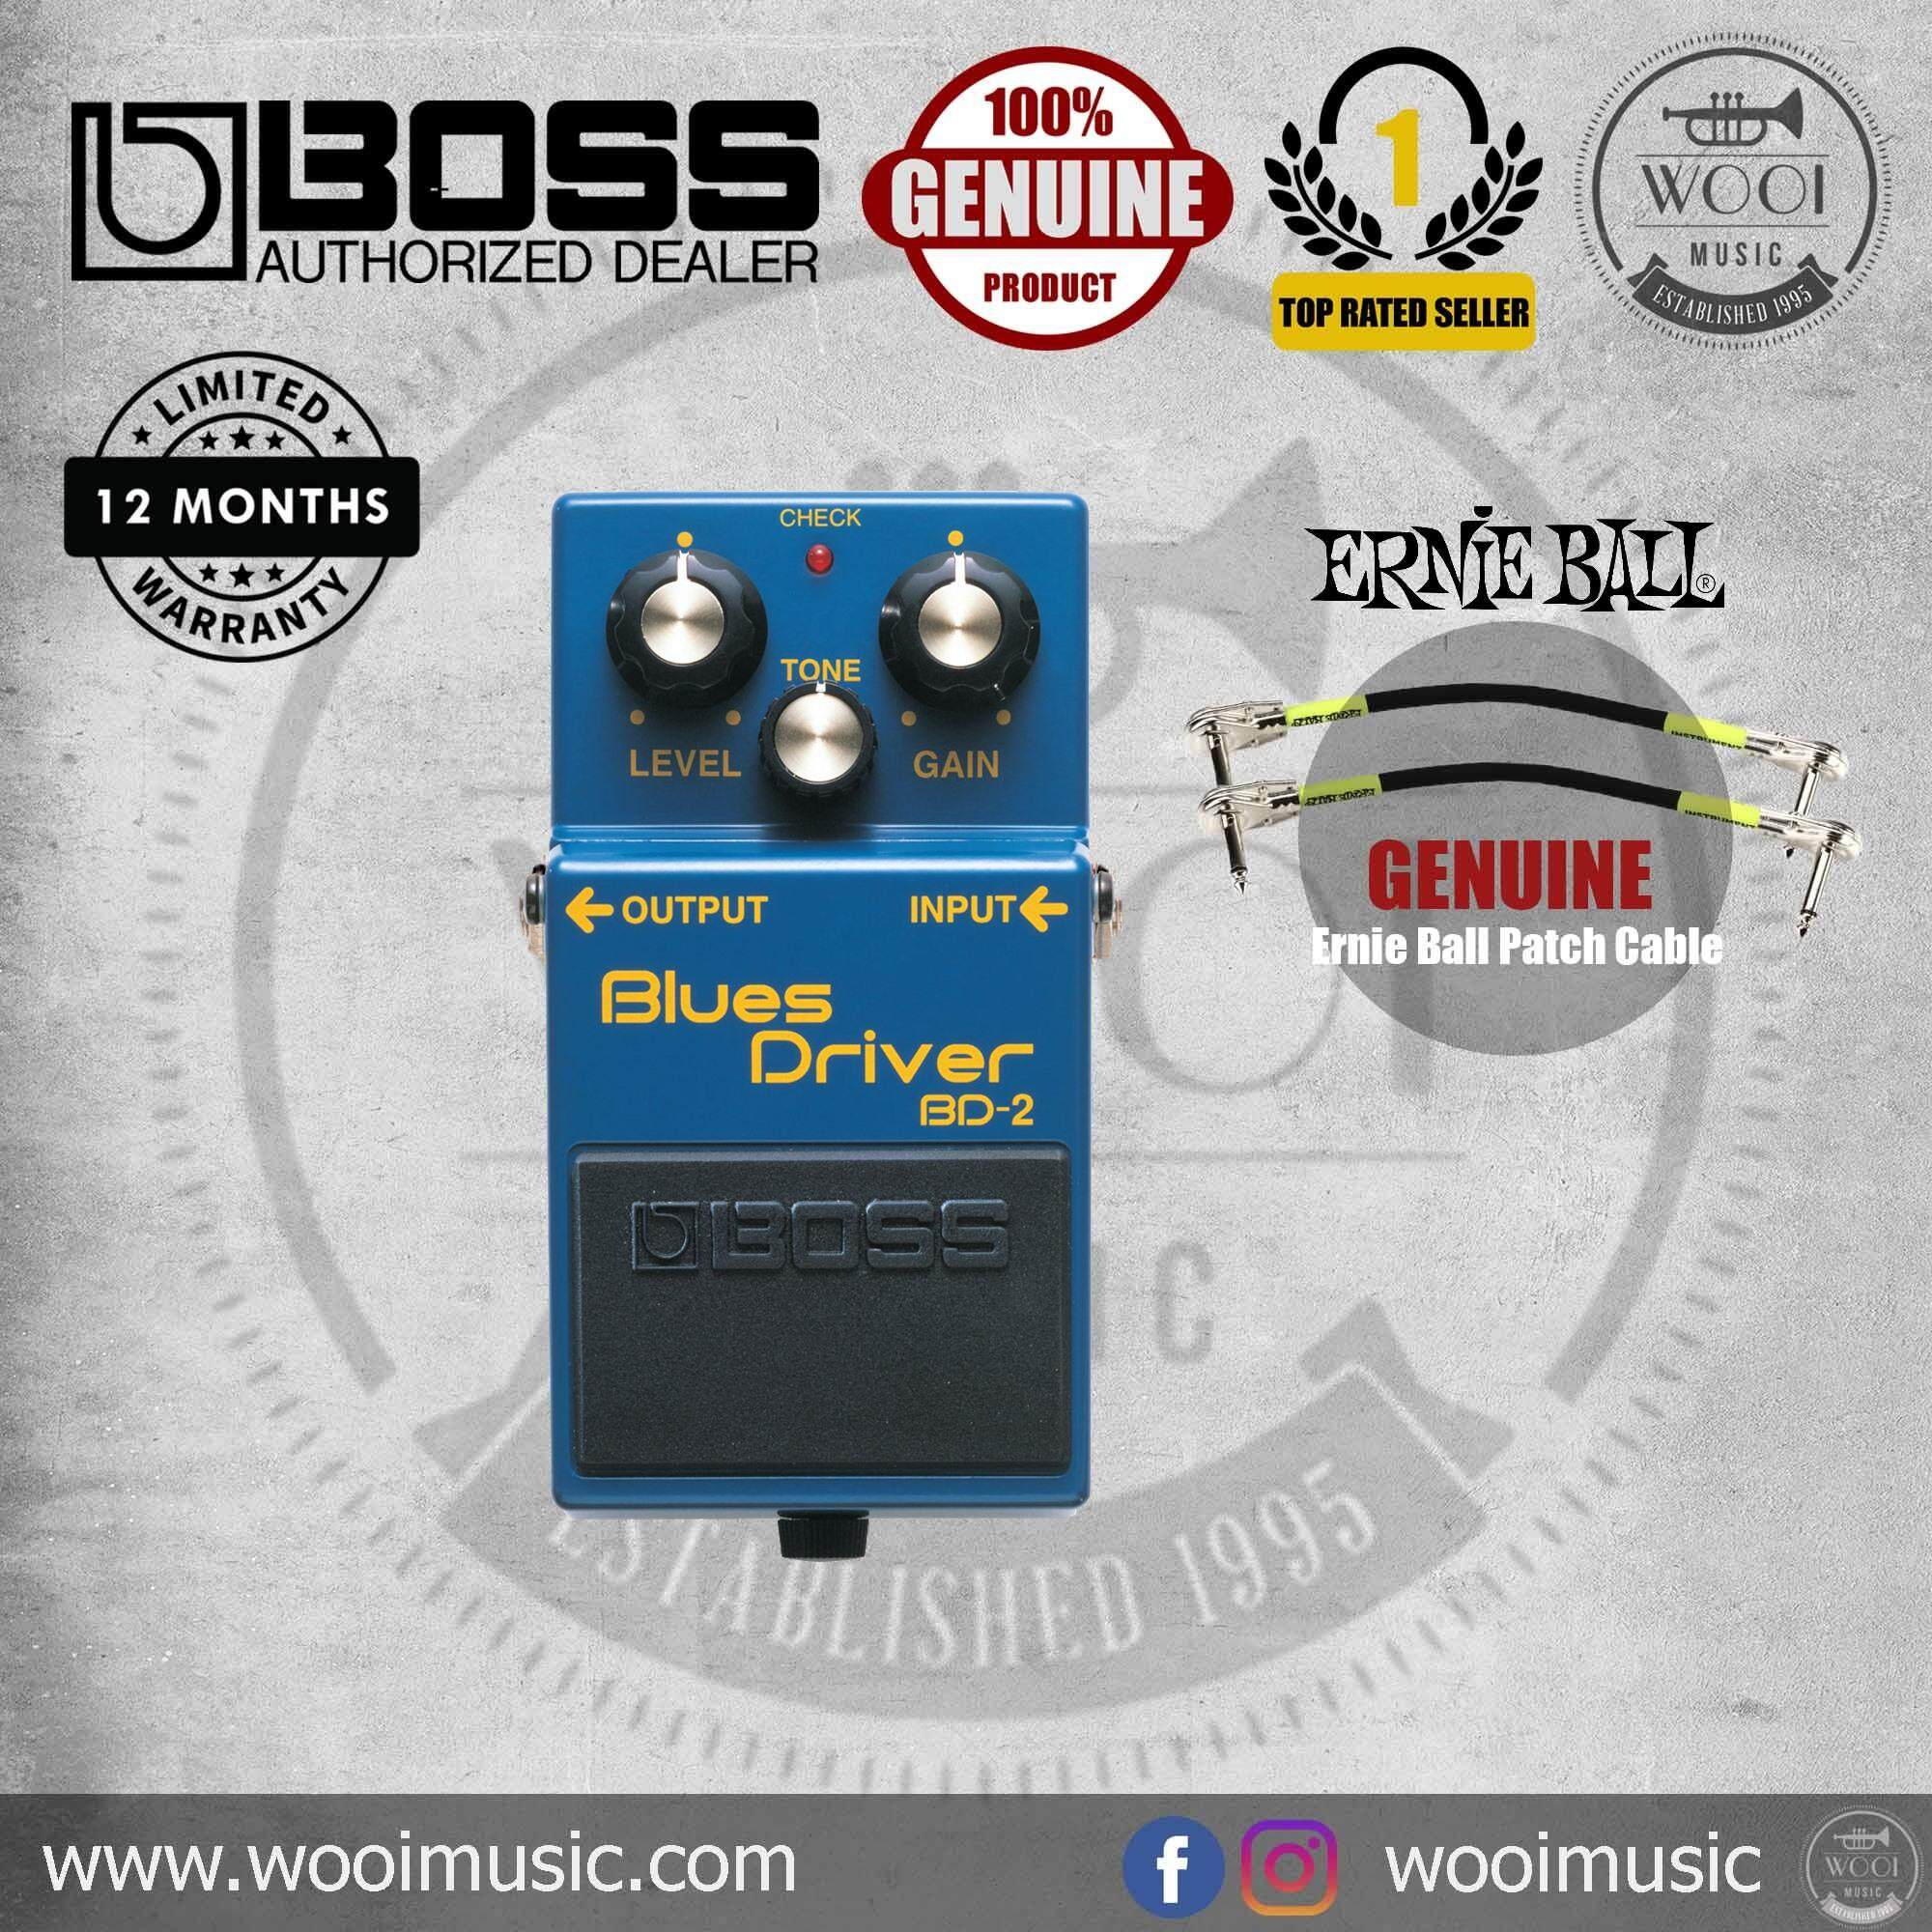 Boss BD-2 Blues Driver Guitar Pedal (FREE ORIGINAL Ernie Ball Patch Cable)